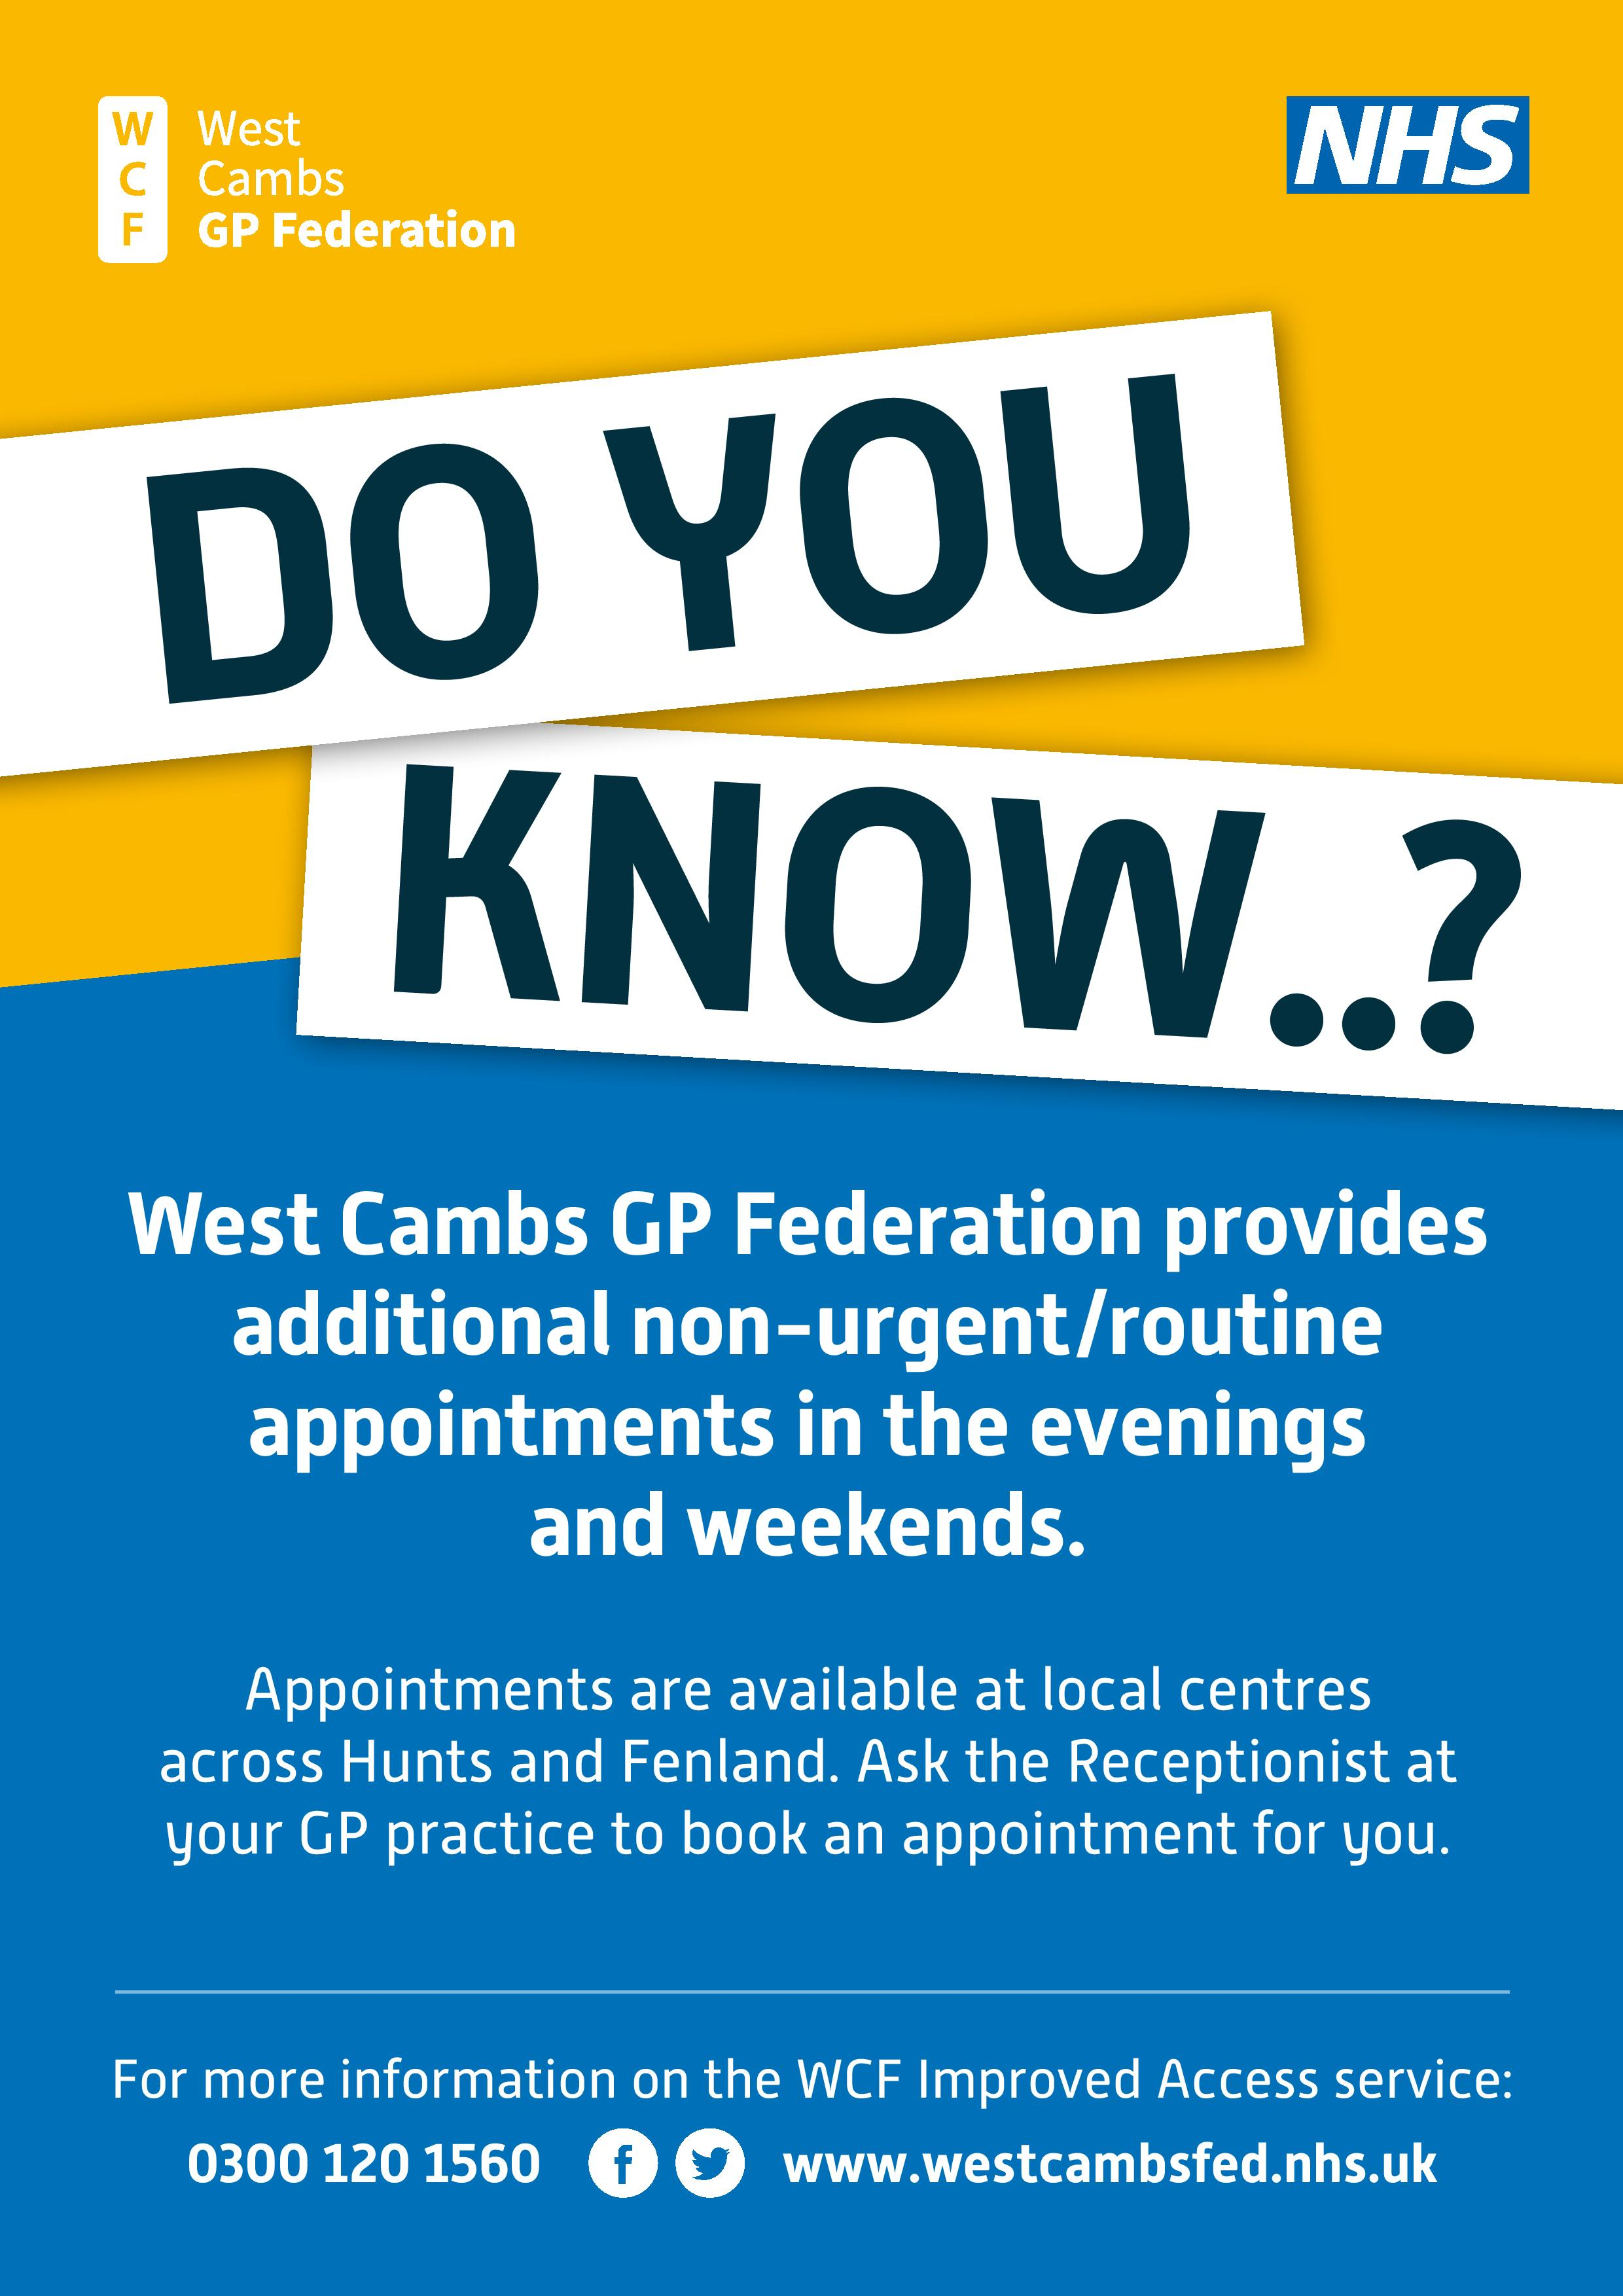 Do you know? West Cambs GP Federation provides additional non-urgent/routine appointments in the evenings and at weekends. Appointments are available at local centres across Hunts and Fenland. Ask the Receptionist to book an appointment for you